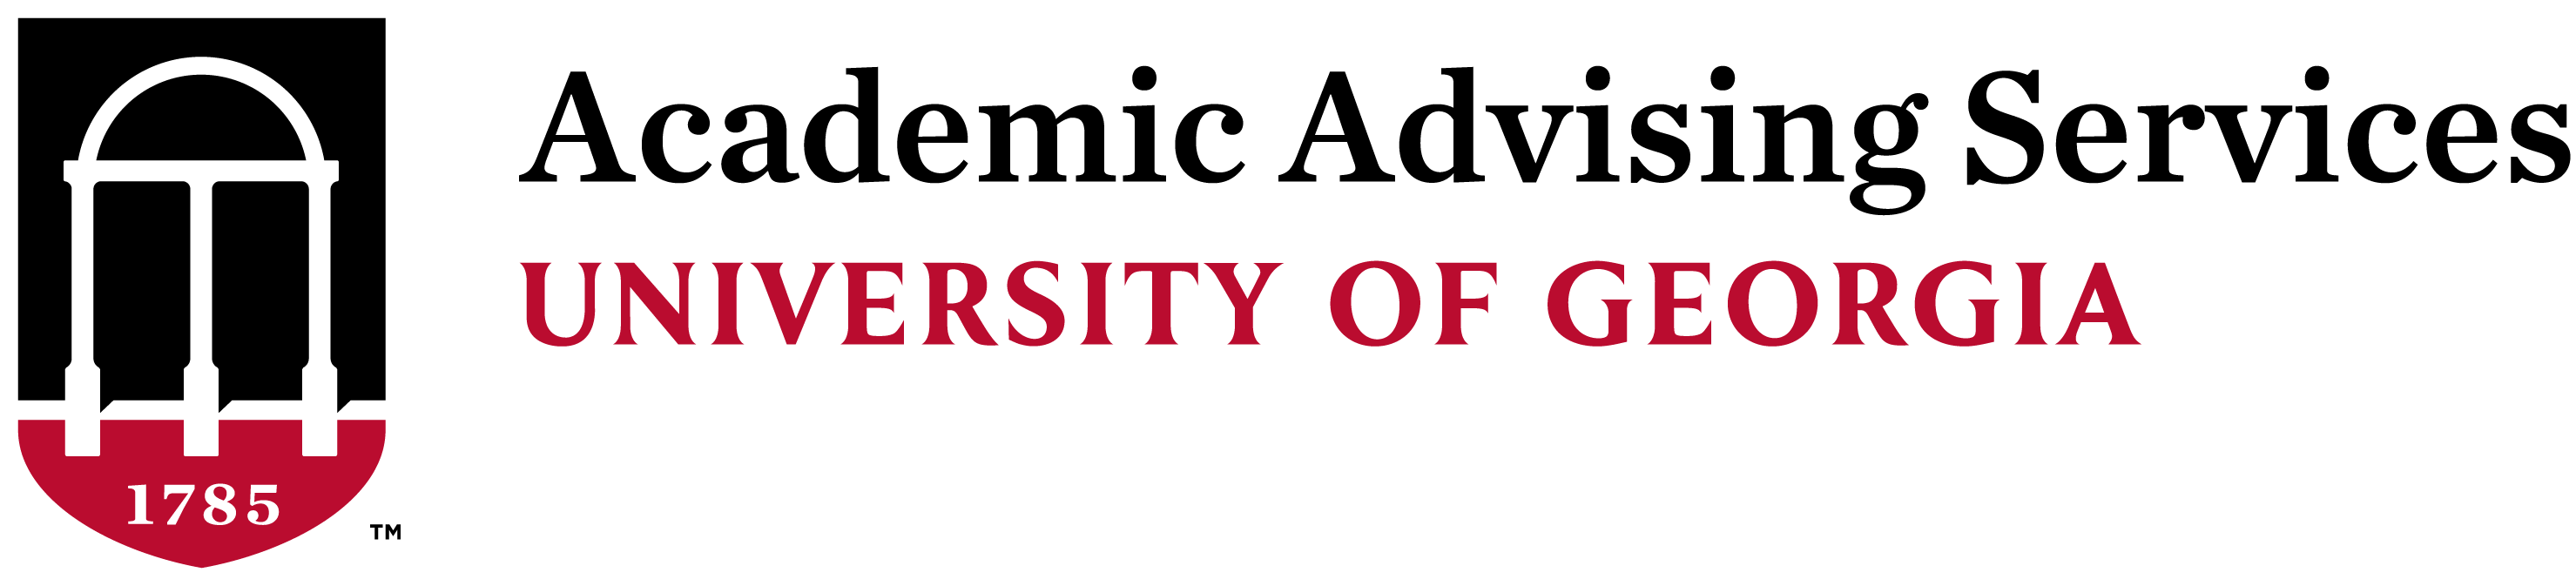 Academic Advising at University of Georgia Logo